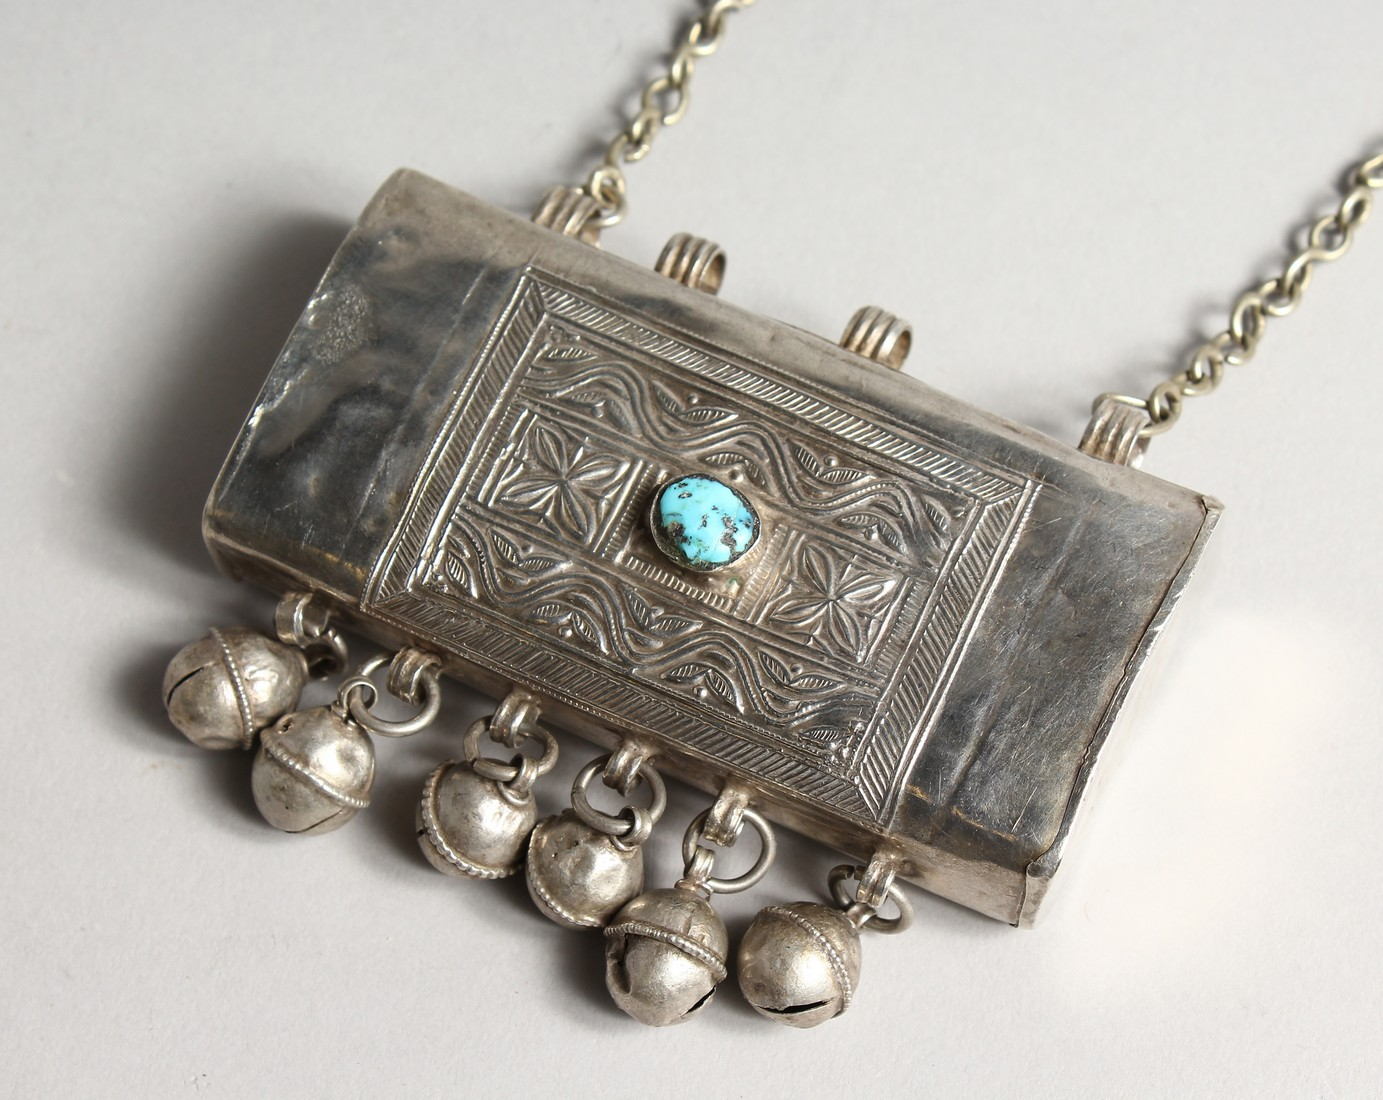 AN ISLAMIC SILVER BOX with bells, stone and chain